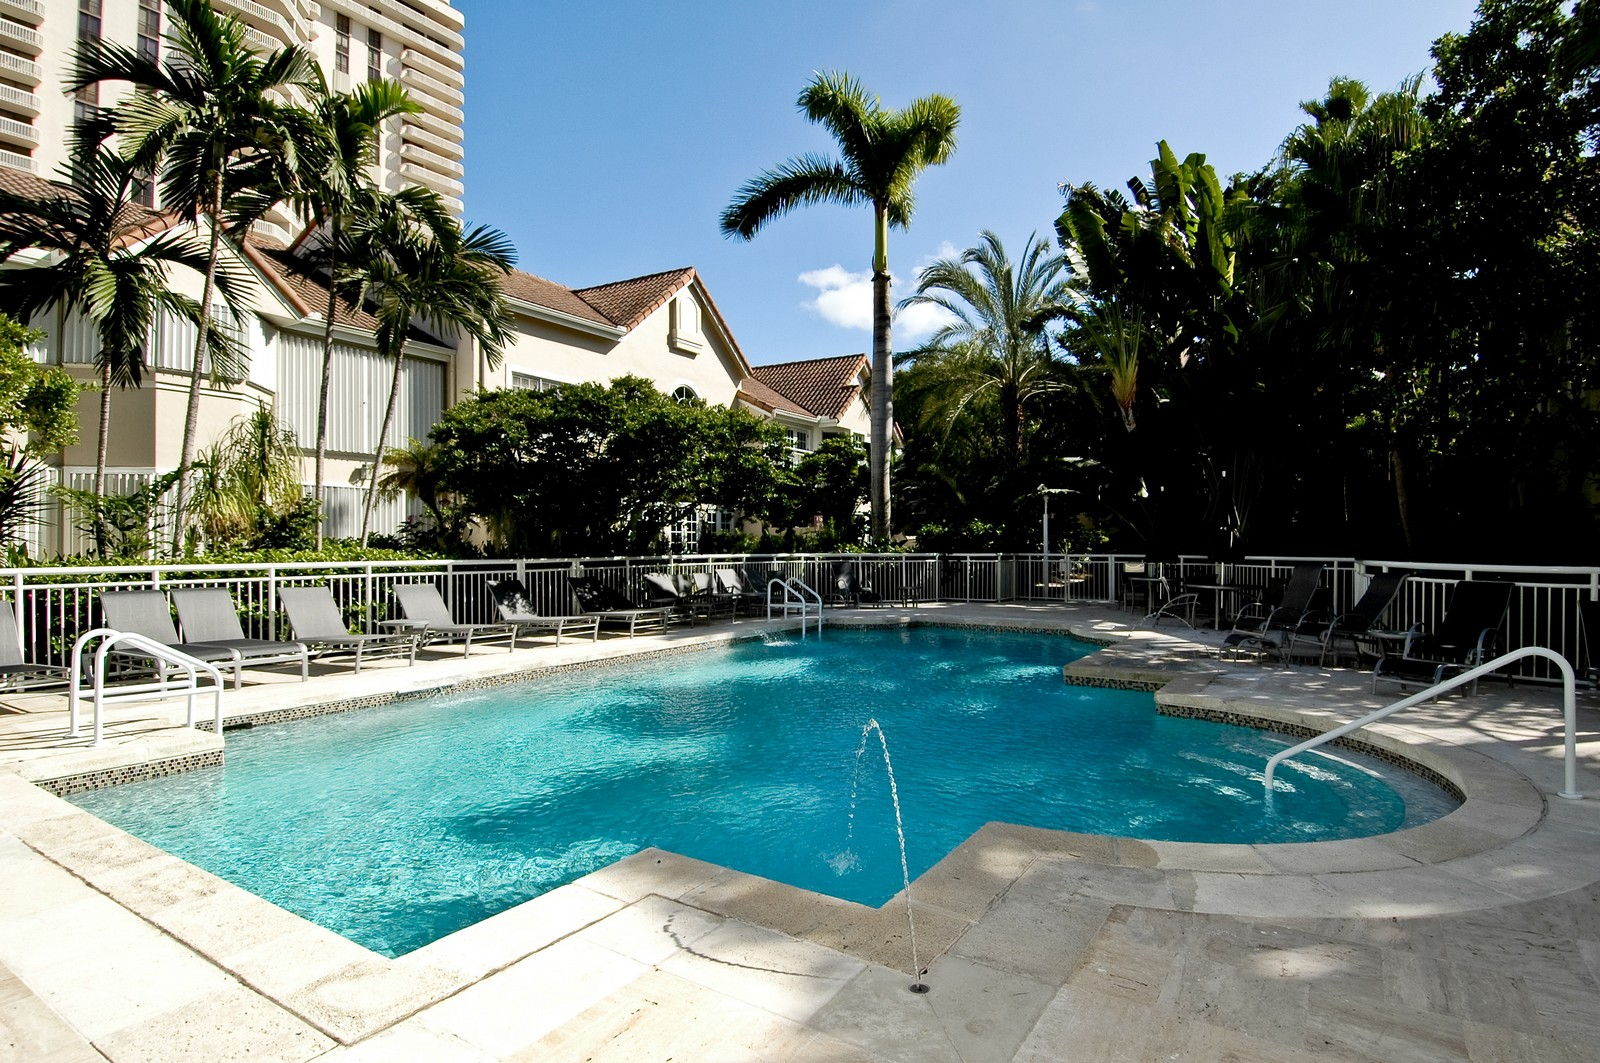 Real Estate Photography - 19566 NE 37 Ave, Aventura, FL, 33180 - Pool